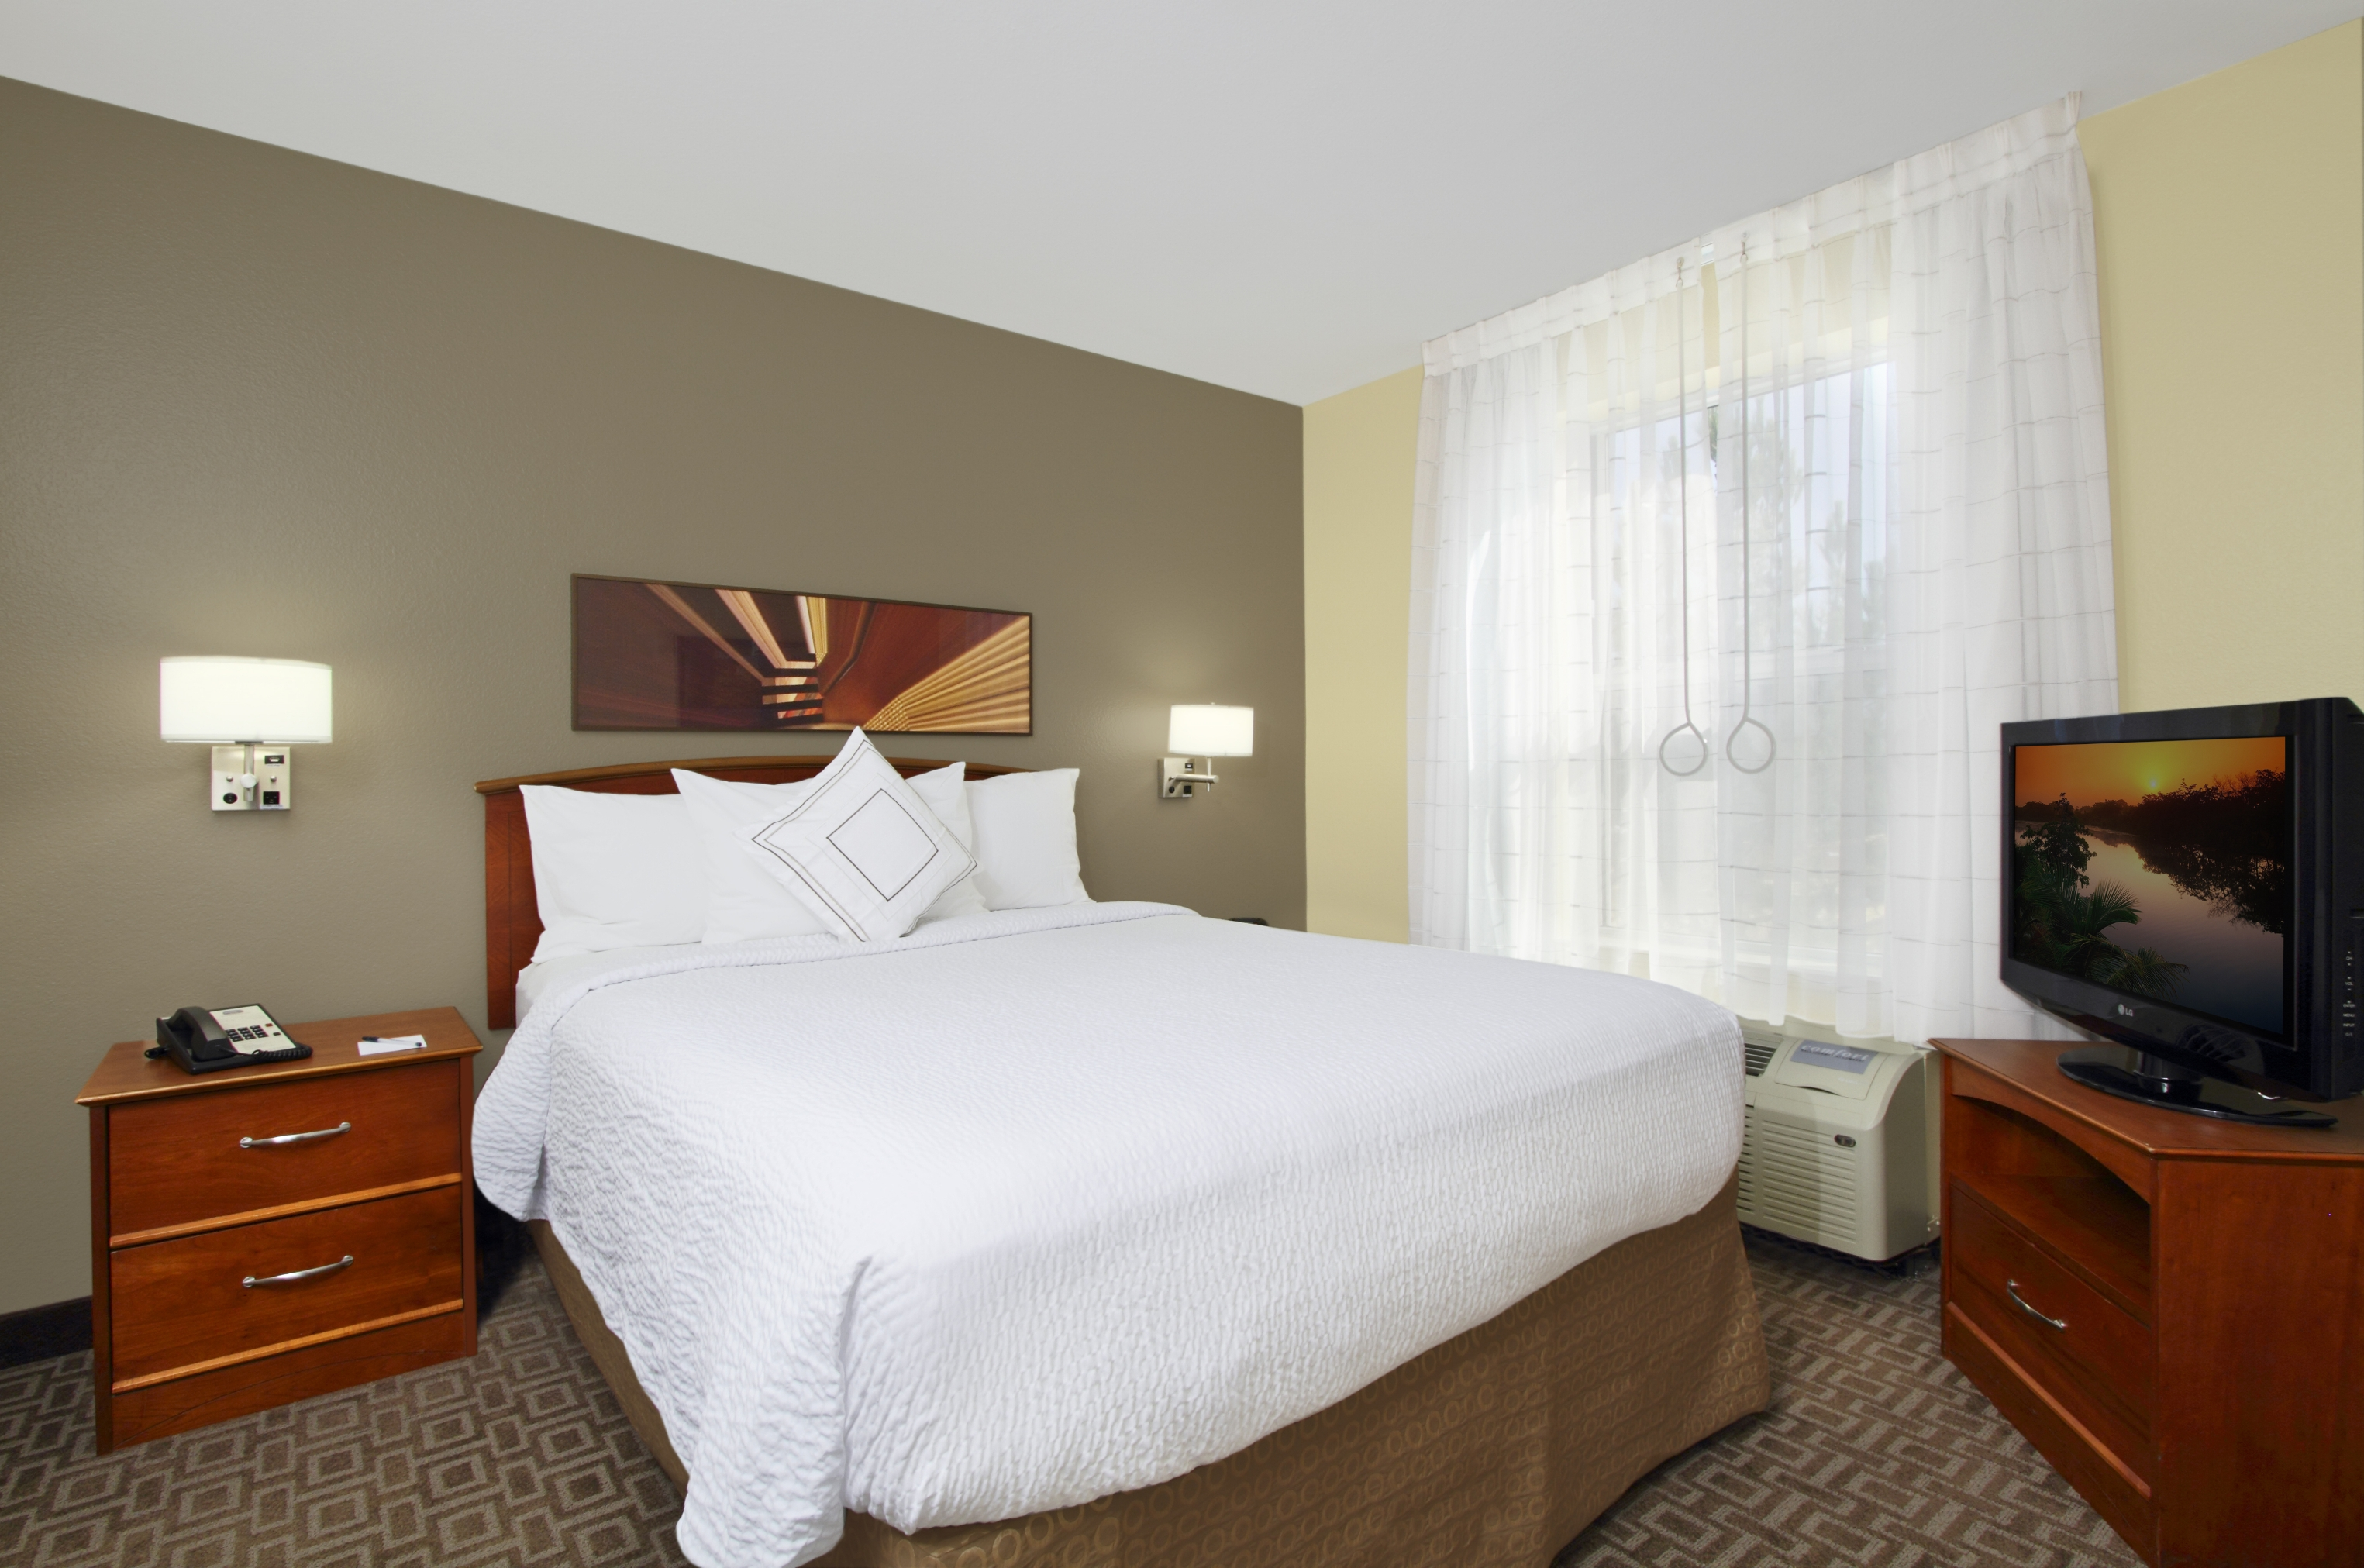 TownePlace Suites by Marriott Newark Silicon Valley image 2